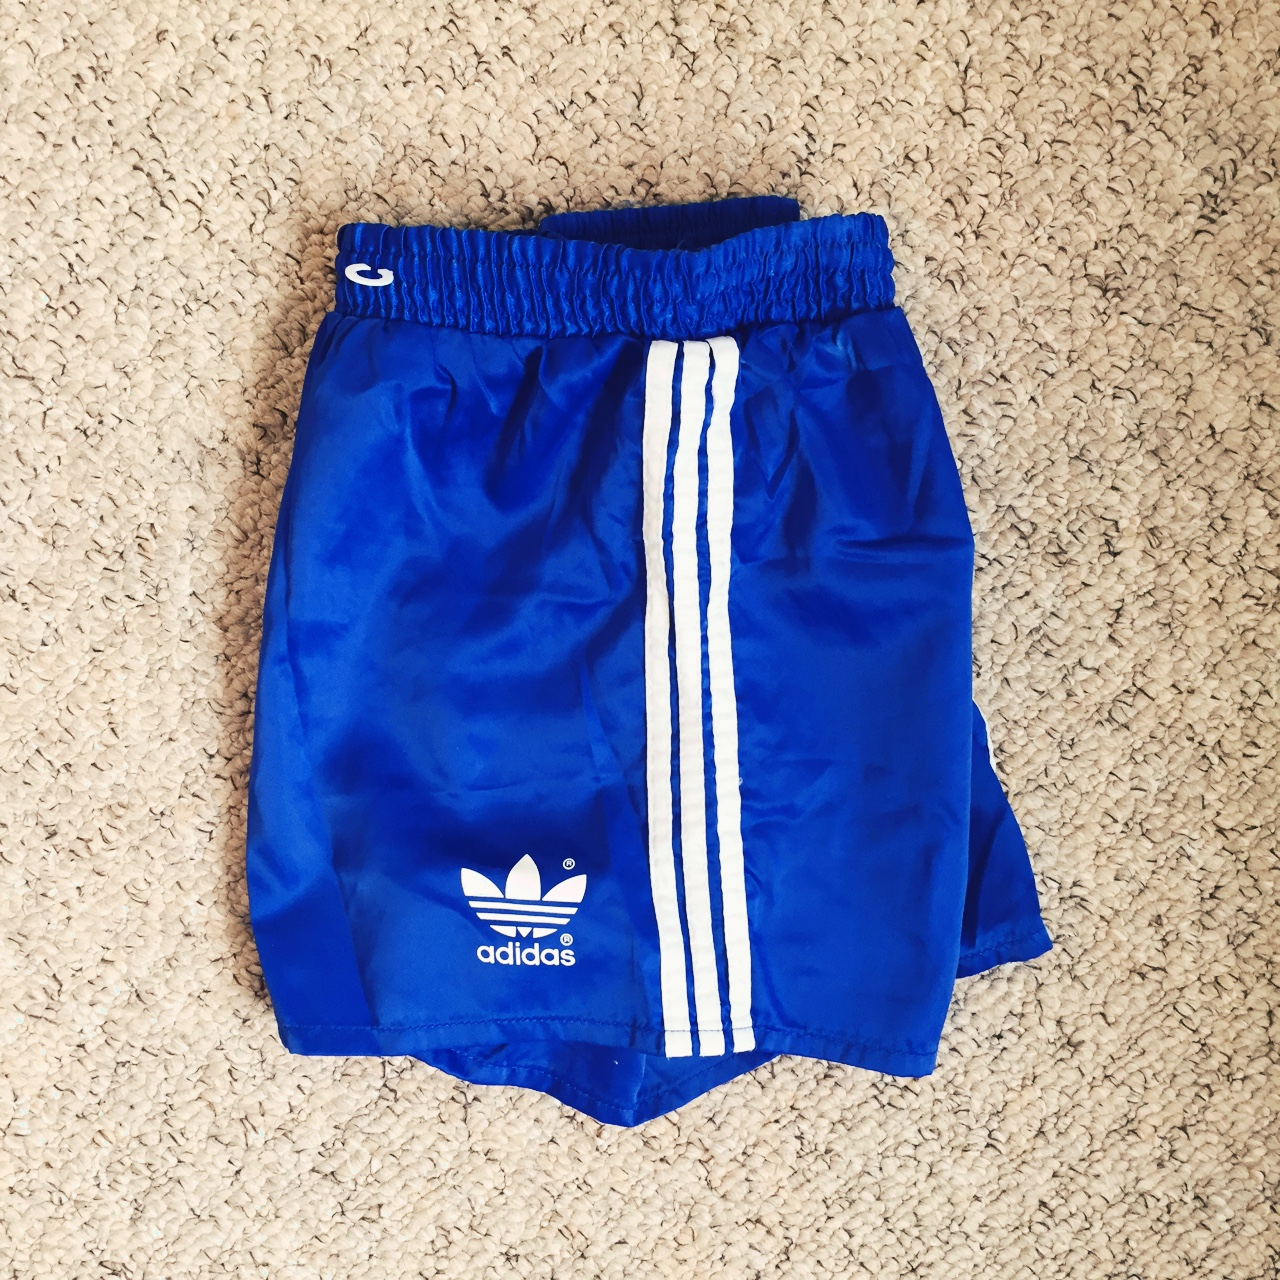 Adidas Vintage Sprinter shorts Nylon glanz